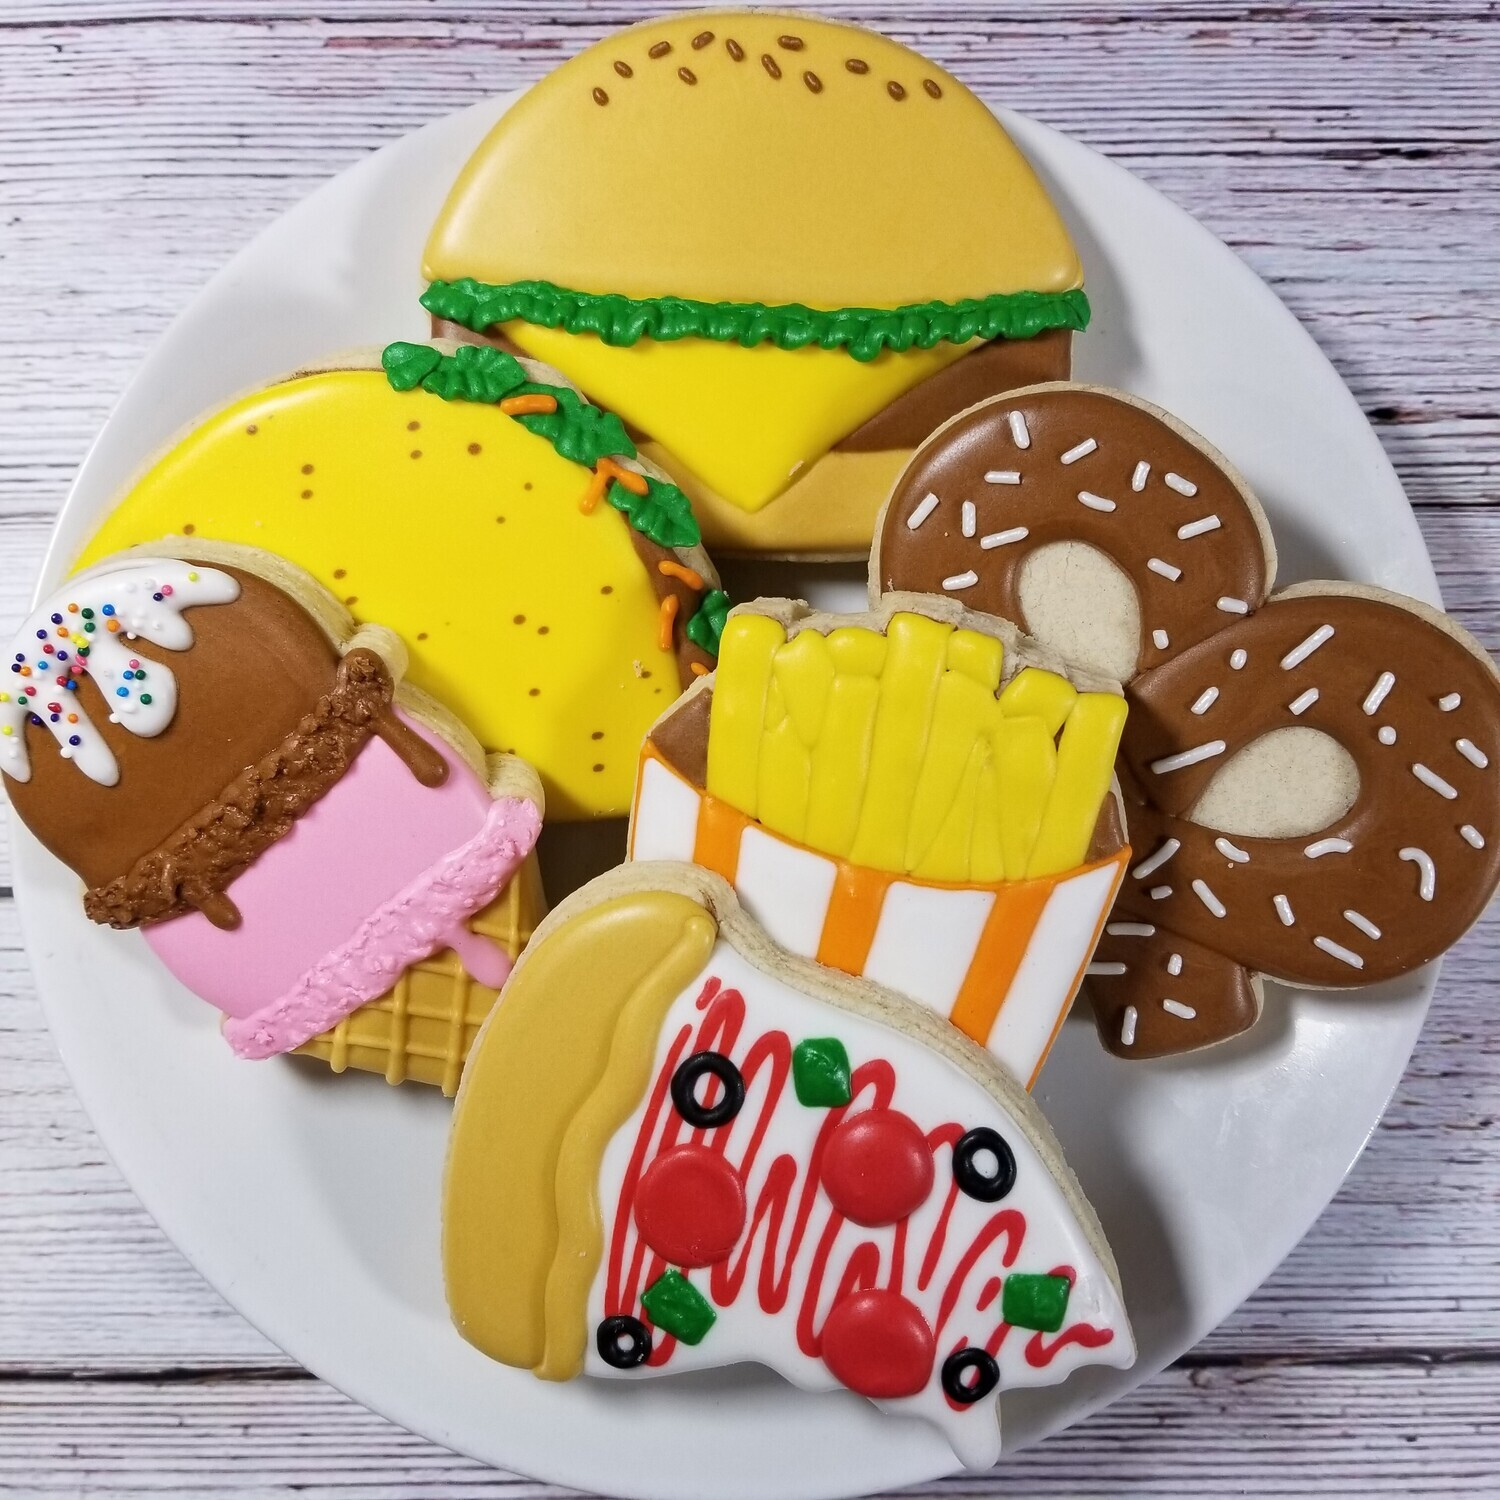 'JUNK FOOD Decorating Workshop - MONDAY, AUGUST 16th at 6 p.m. (THE COOKIE DECORATING STUDIO)